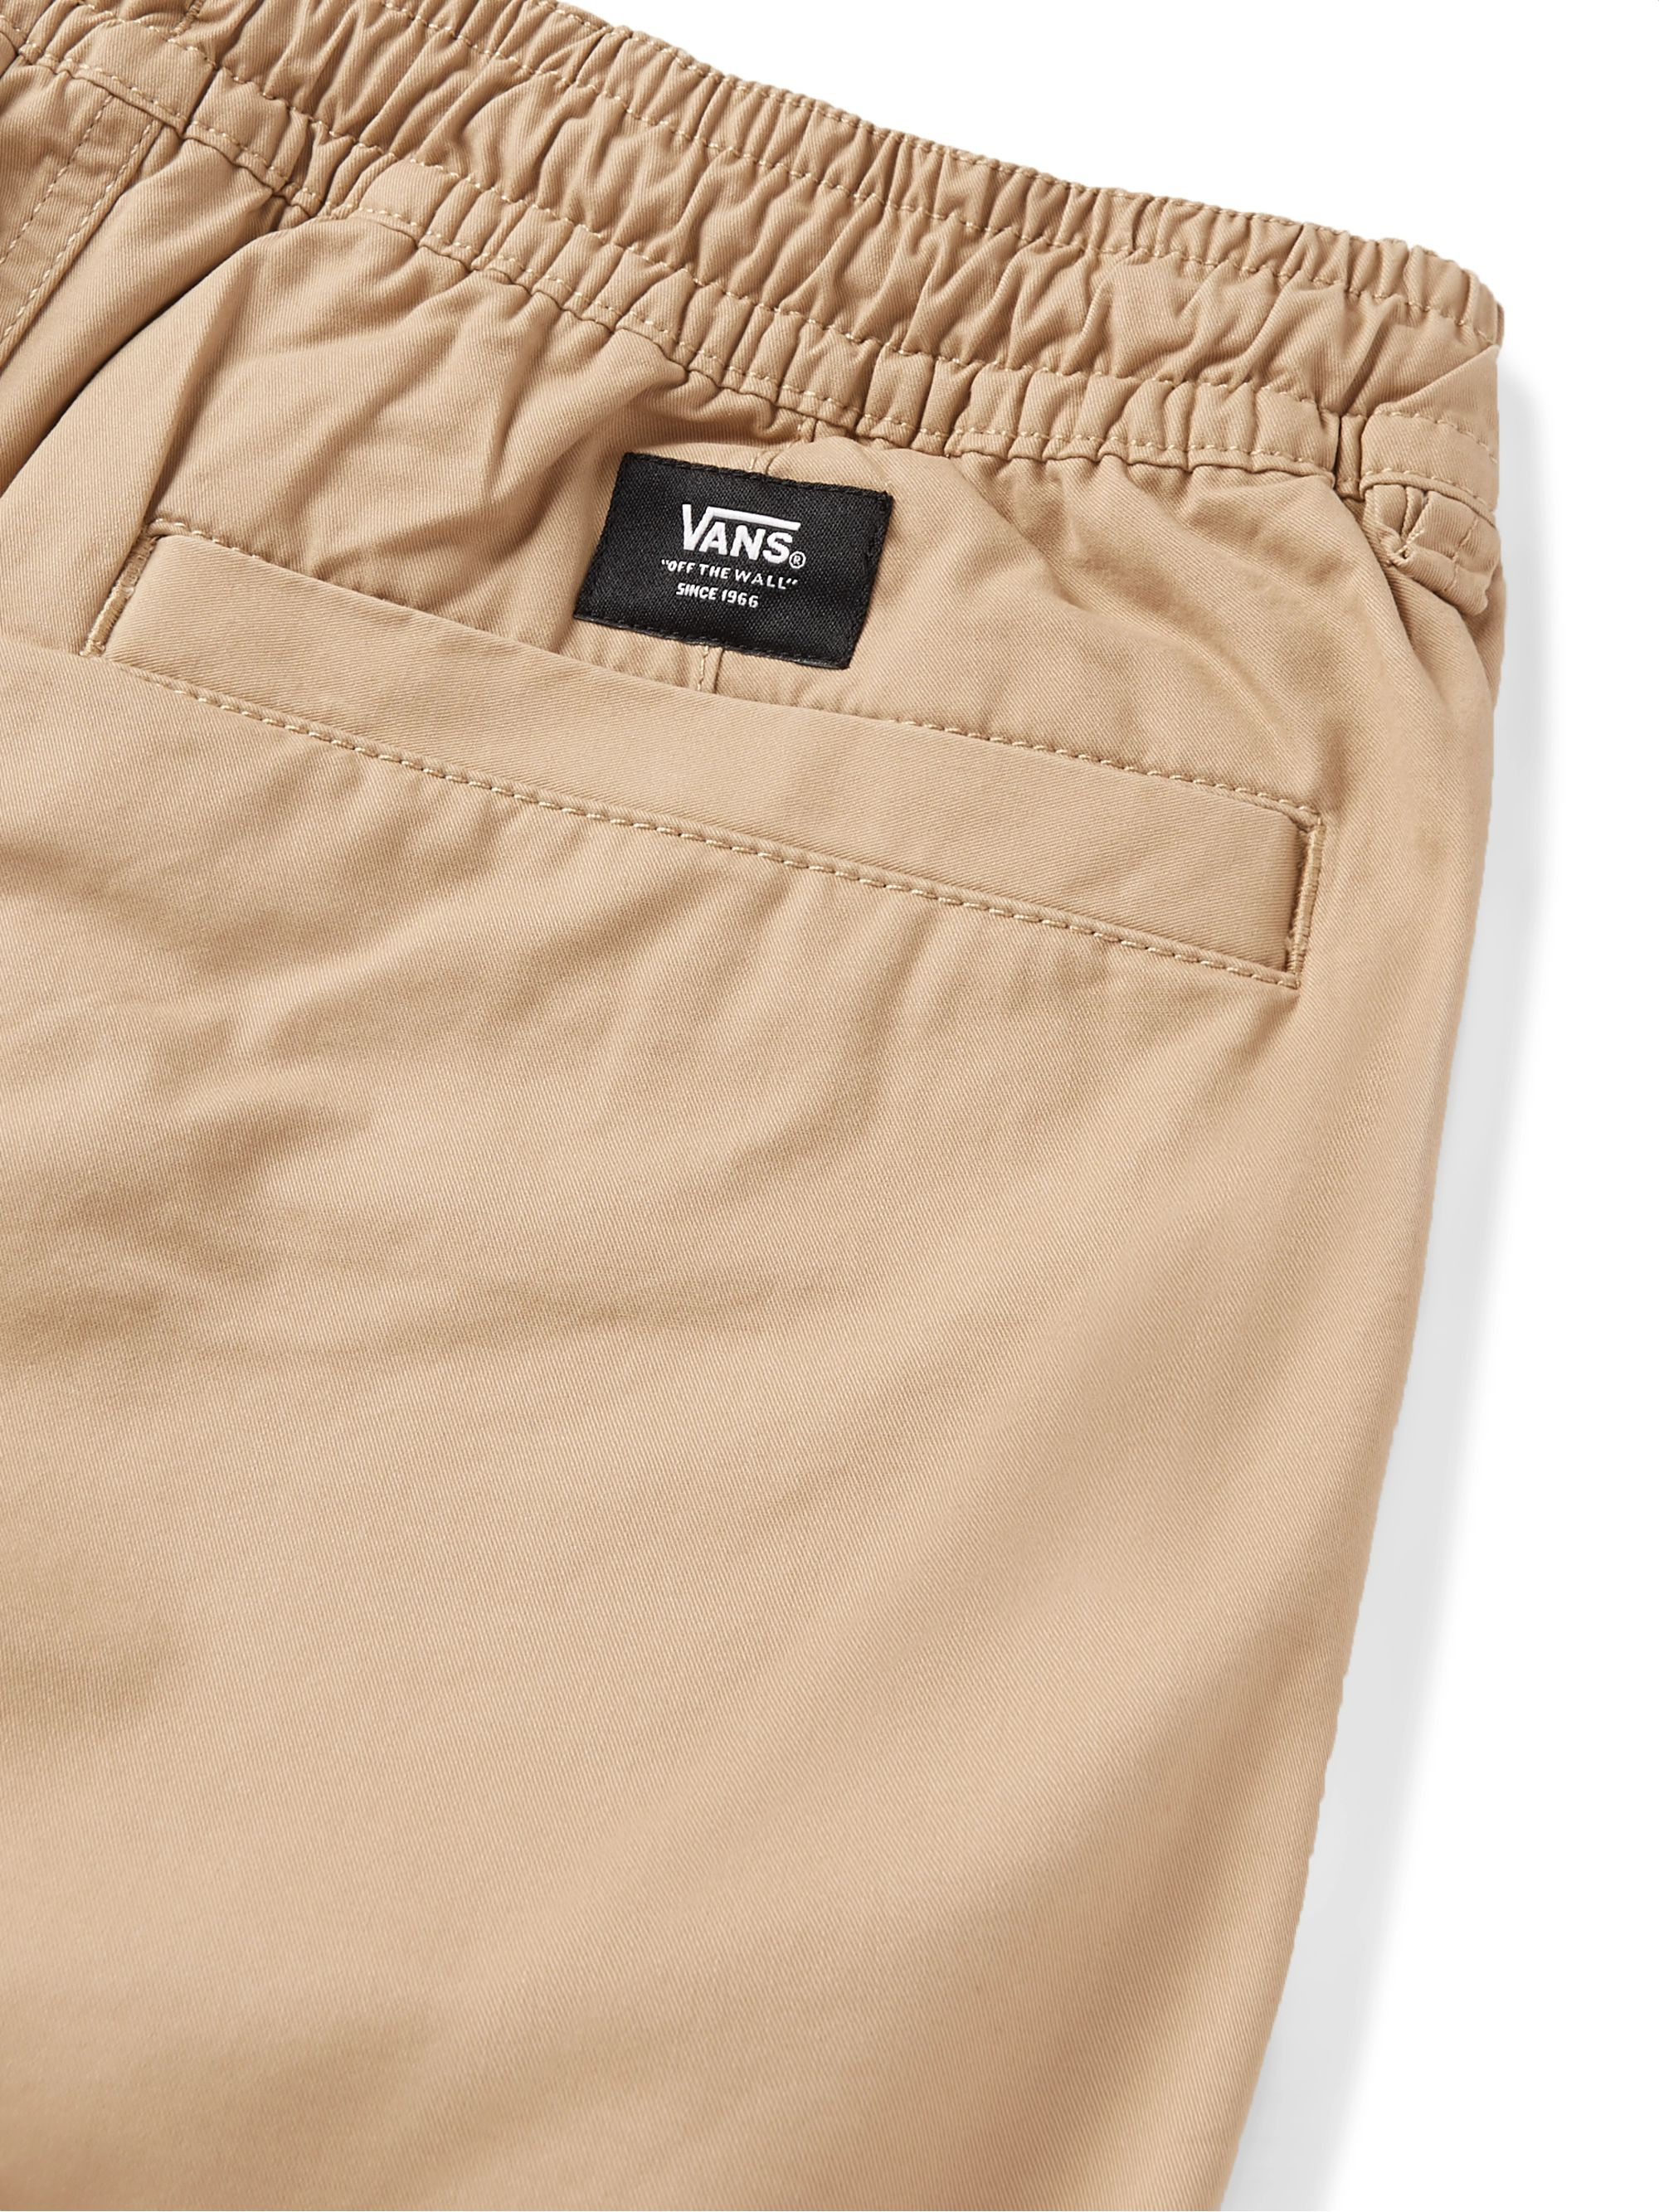 Vans Range Cotton-Twill Drawstring Shorts